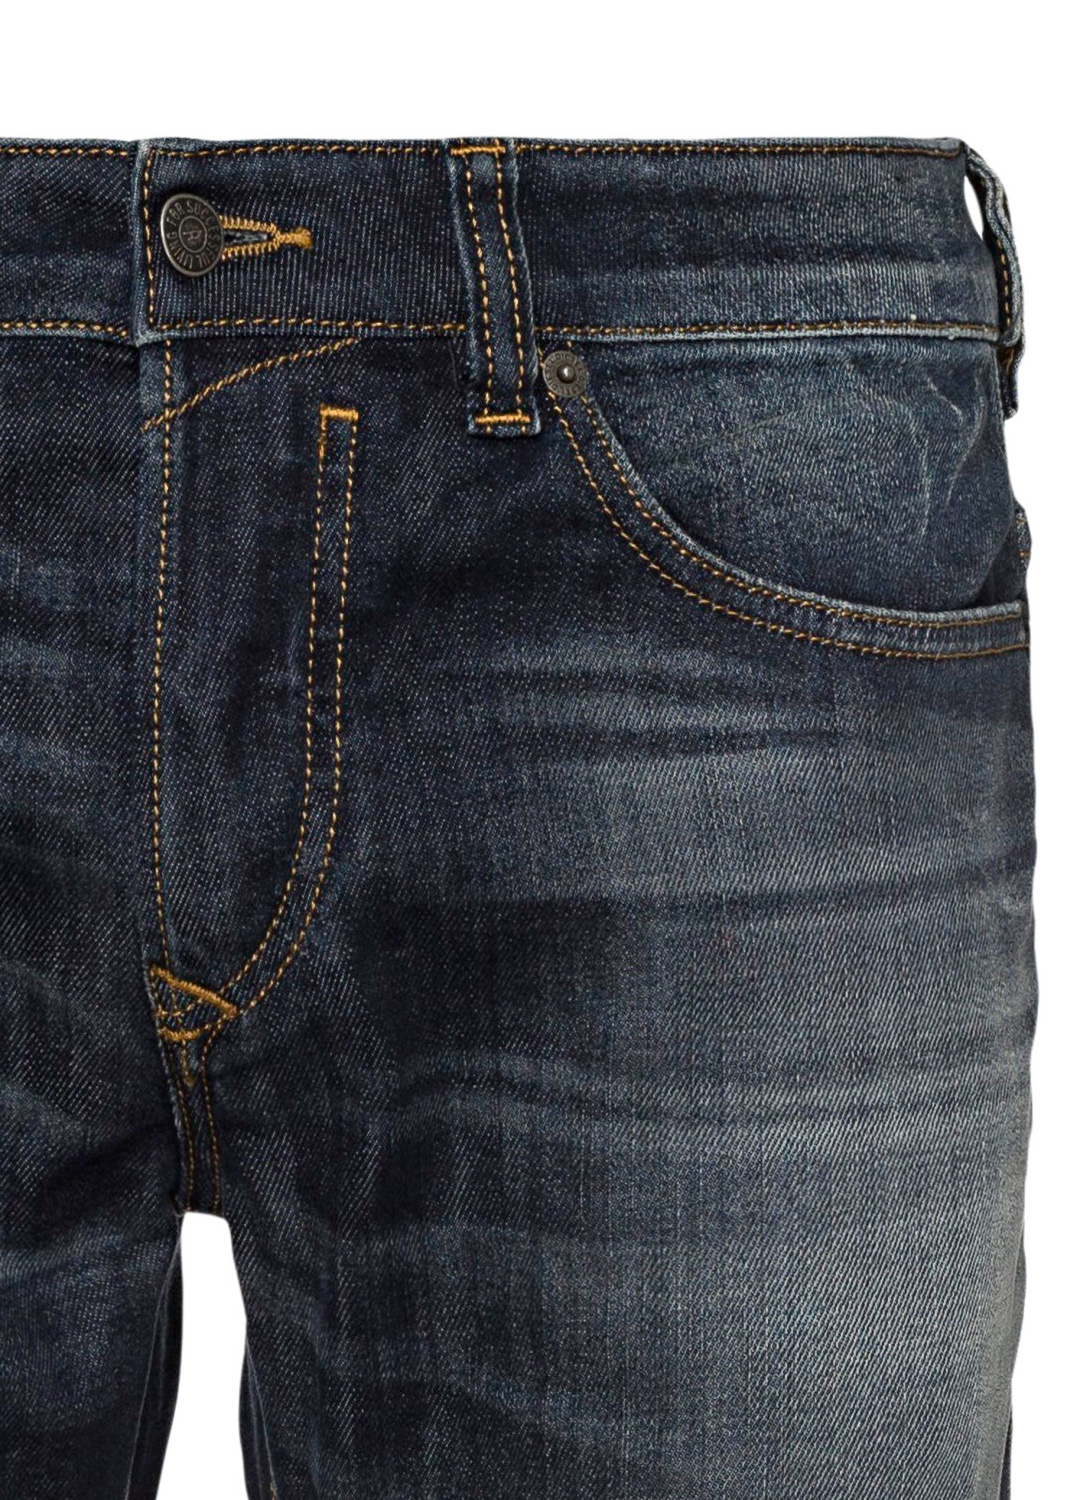 SAFADO-X L.34 TROUSERS image number 2